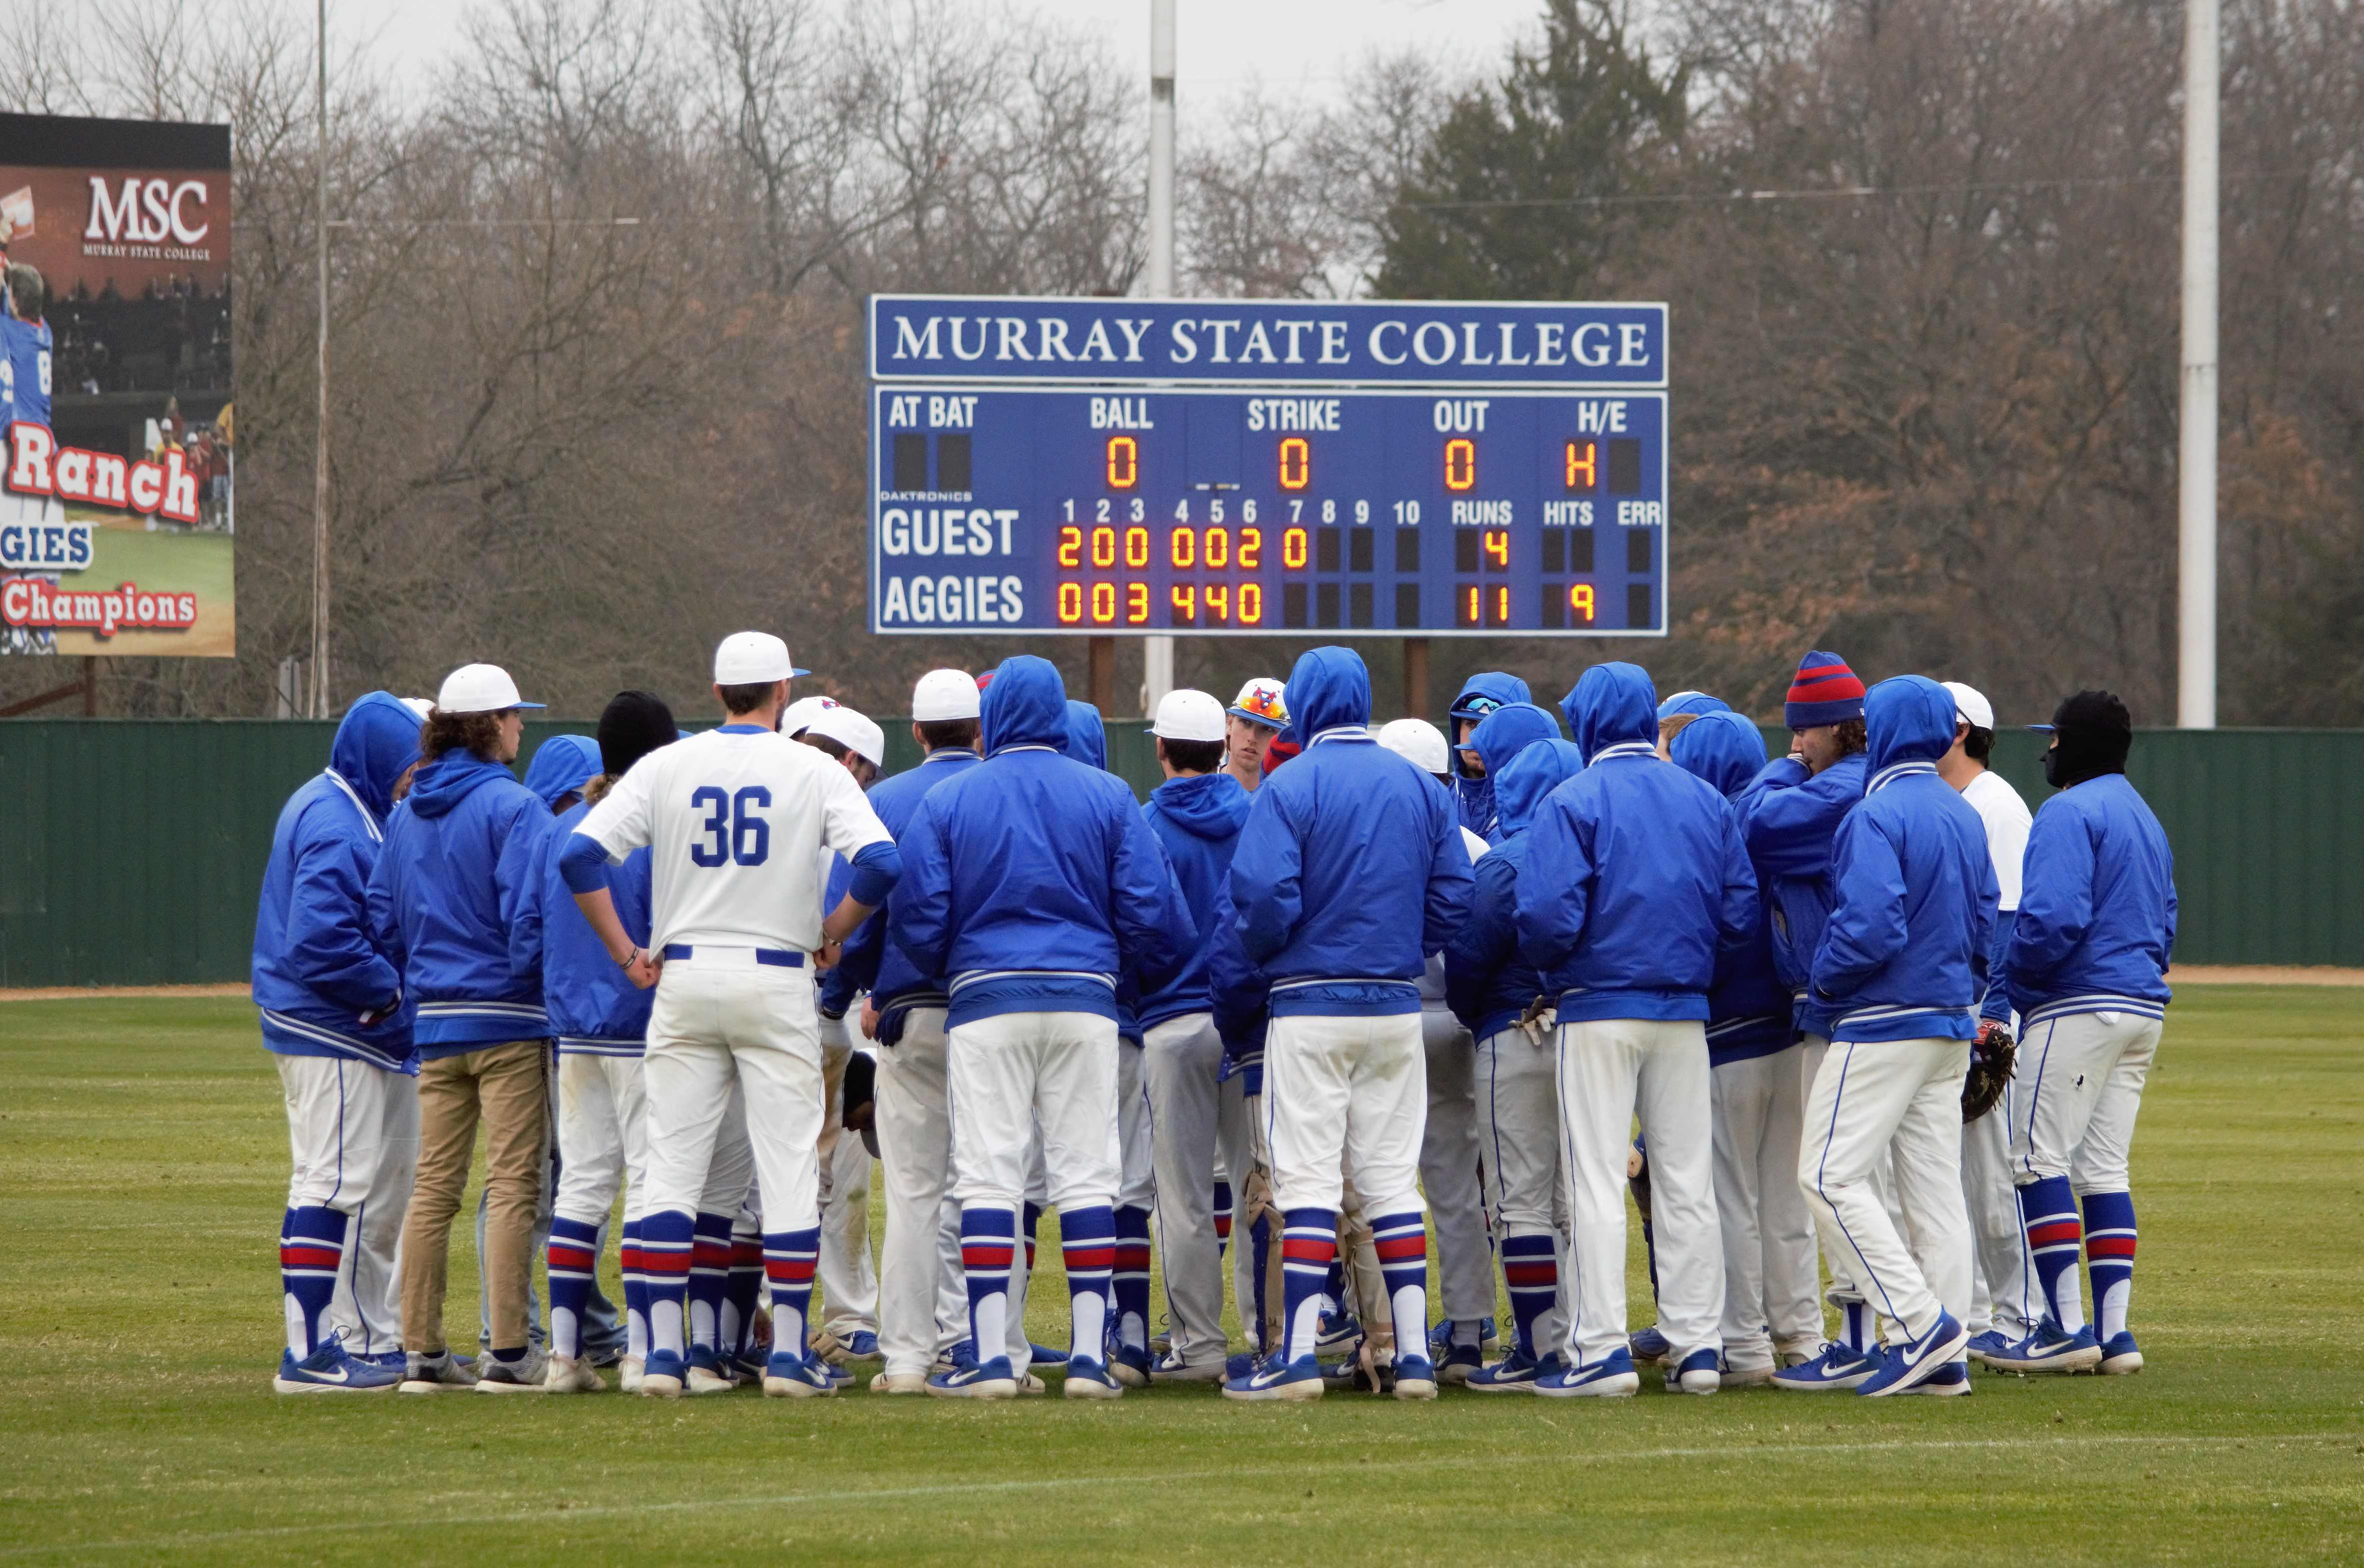 MSC Baseball falls to Seminole State in rain delayed game, February 9